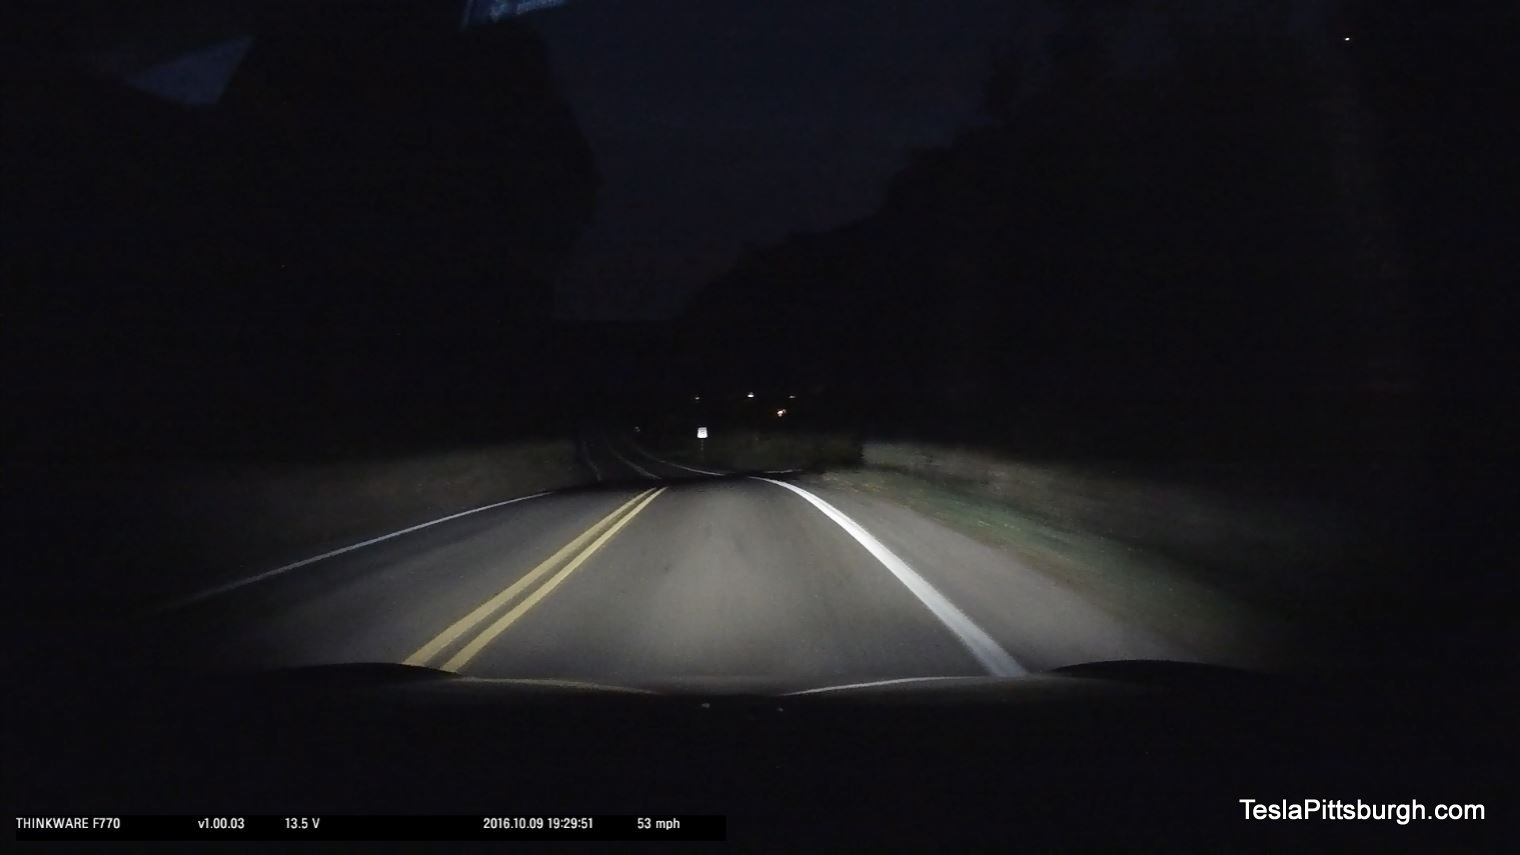 tesla-pittsburgh-dashcam-review-thinkware-f770-camera-mingo-night-curves